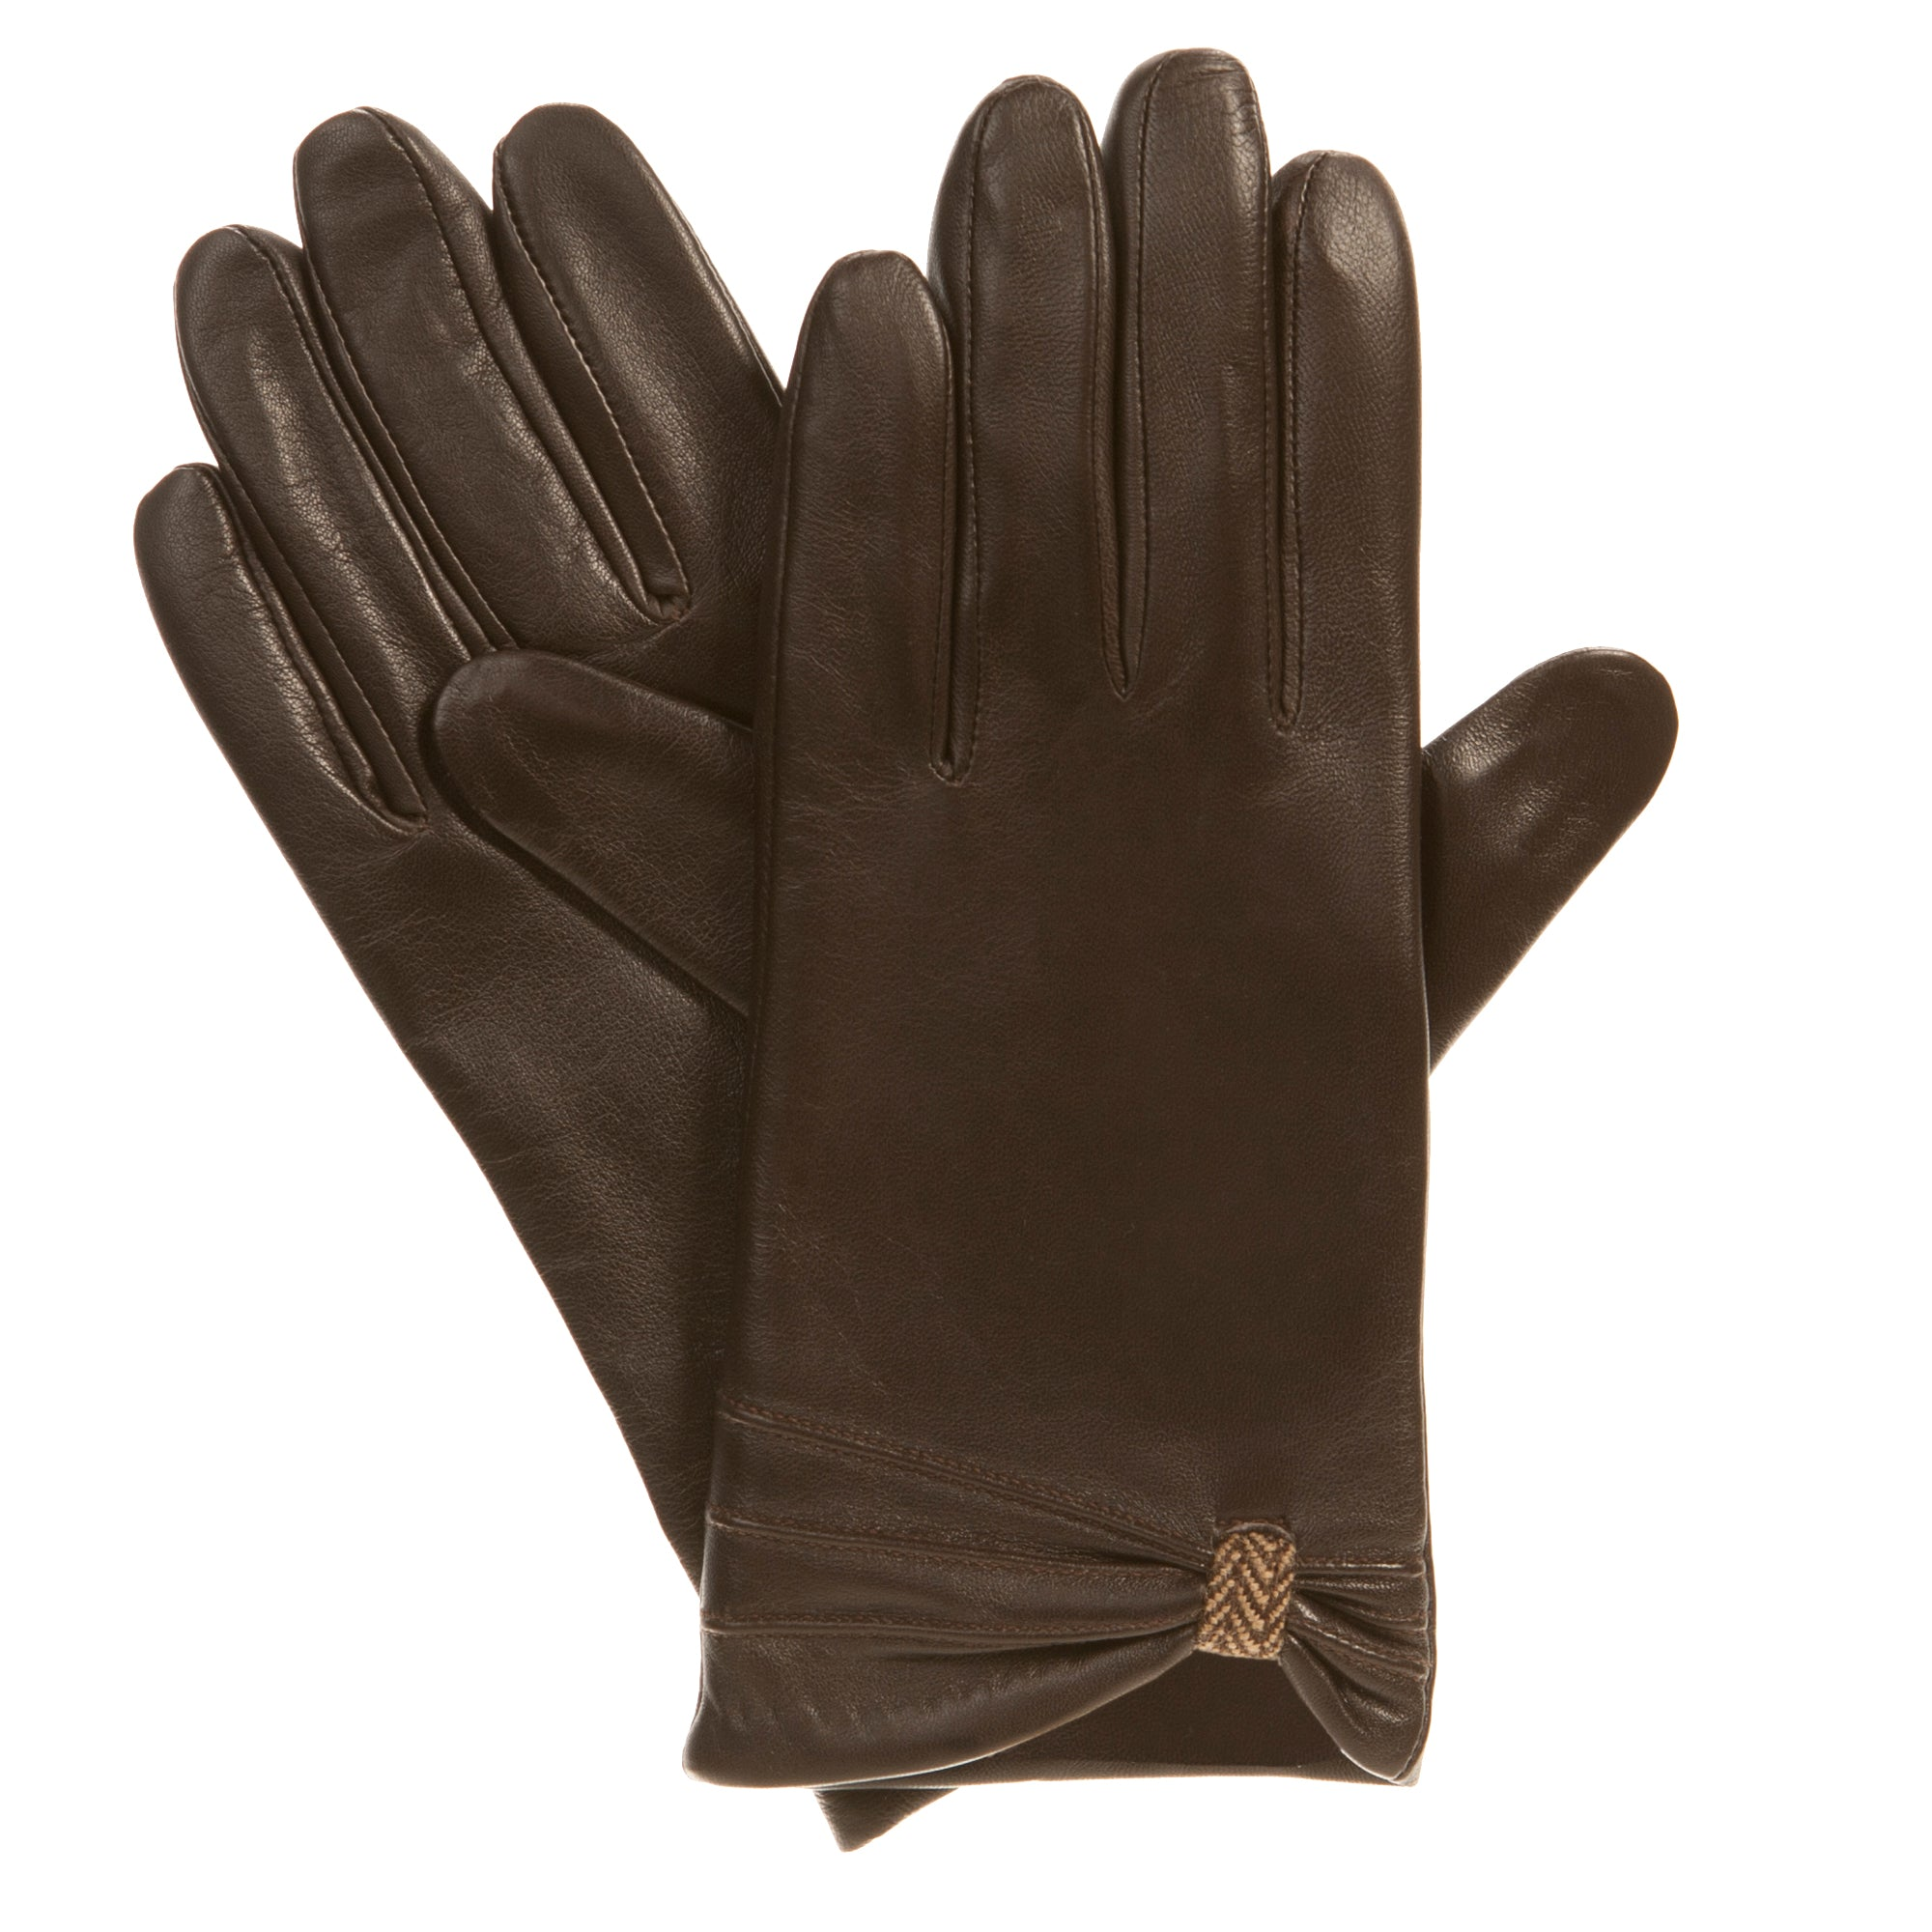 Isotoner Women's Novelty Leather Gloves with Cinch - Fleece Lined